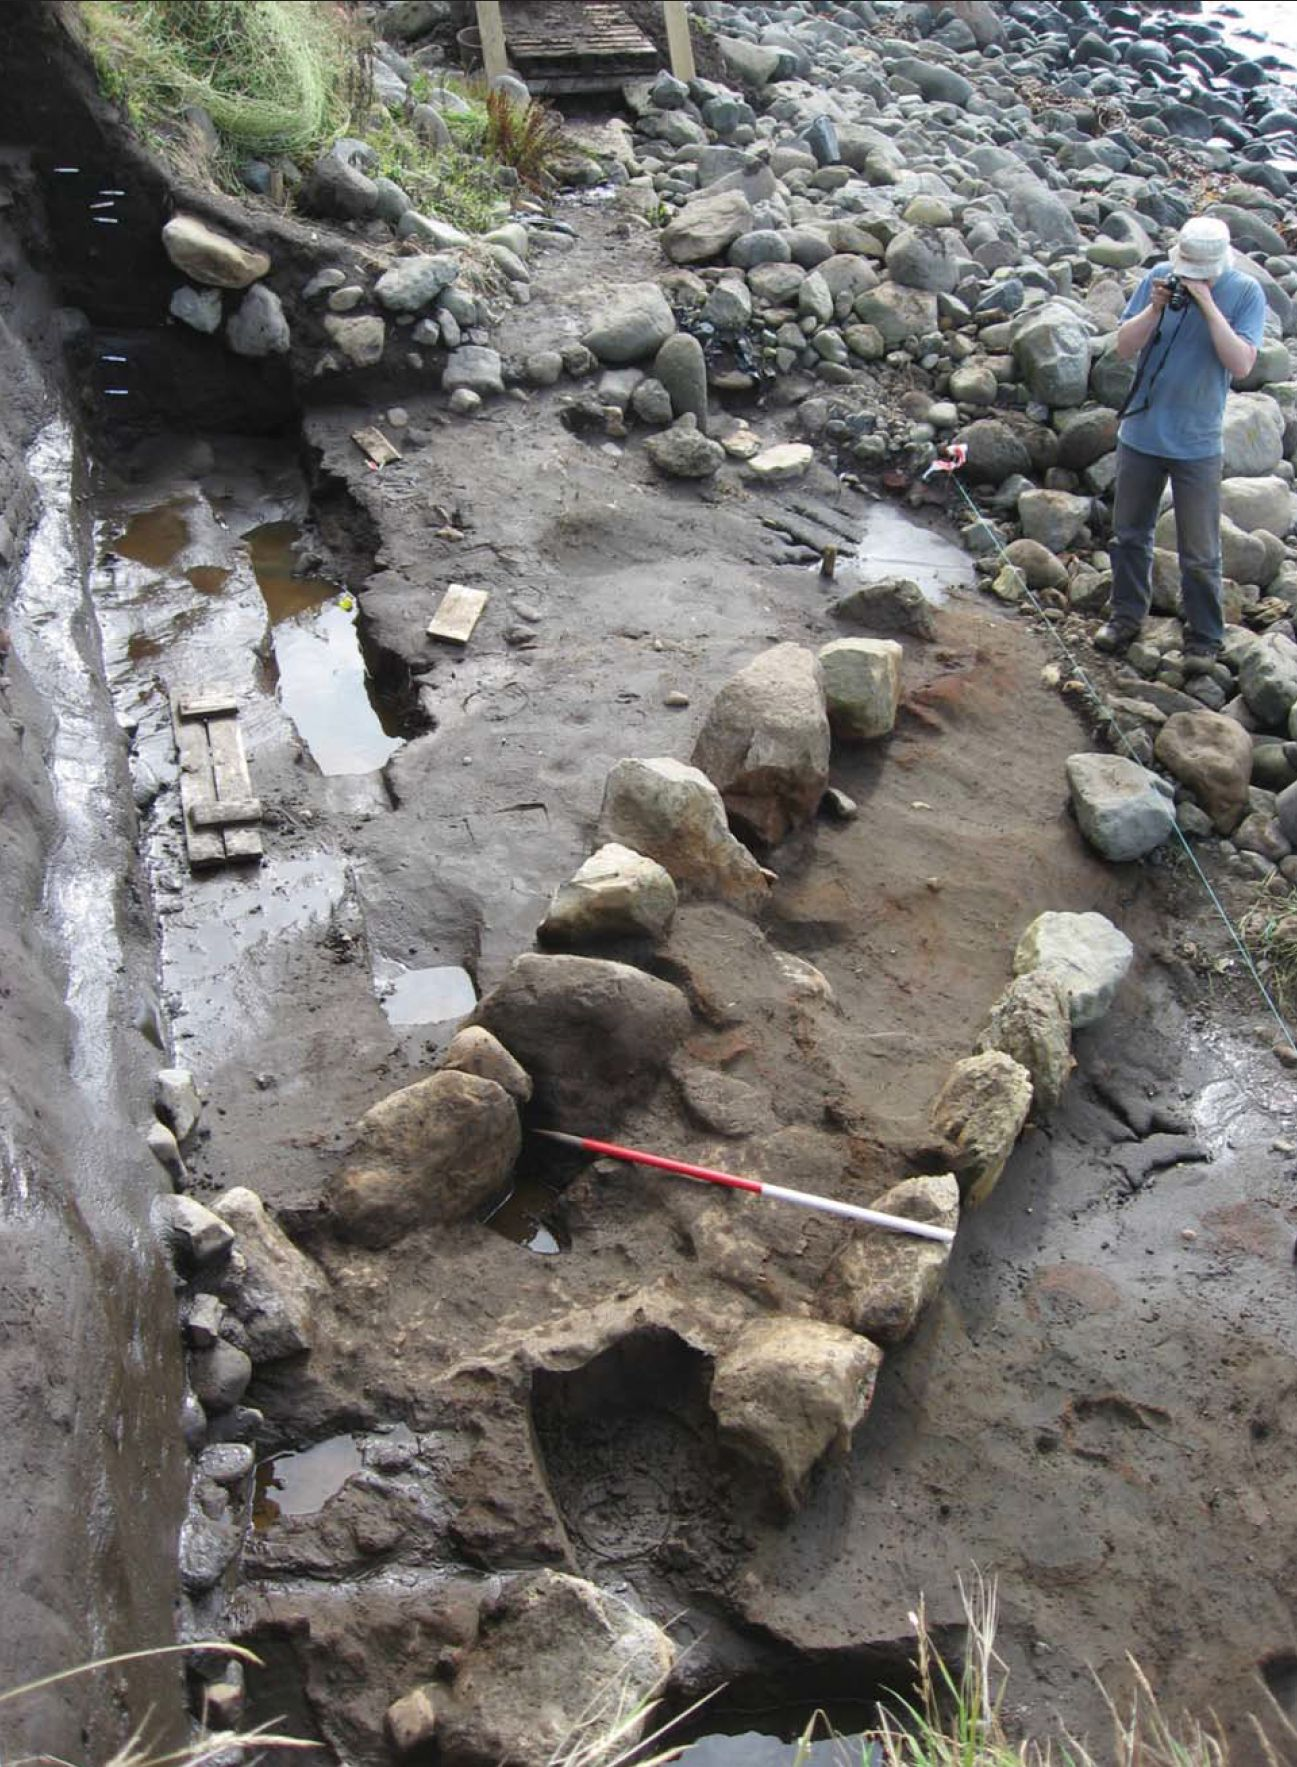 Southern wall of the Viking house at Sandur on Sandoy (source: S. V. Arge: Viking Faroes: Settlement, Paleoeconomy, and Chronology. In: Journal of the North Atlantic 7, 2014, Fig. 5)